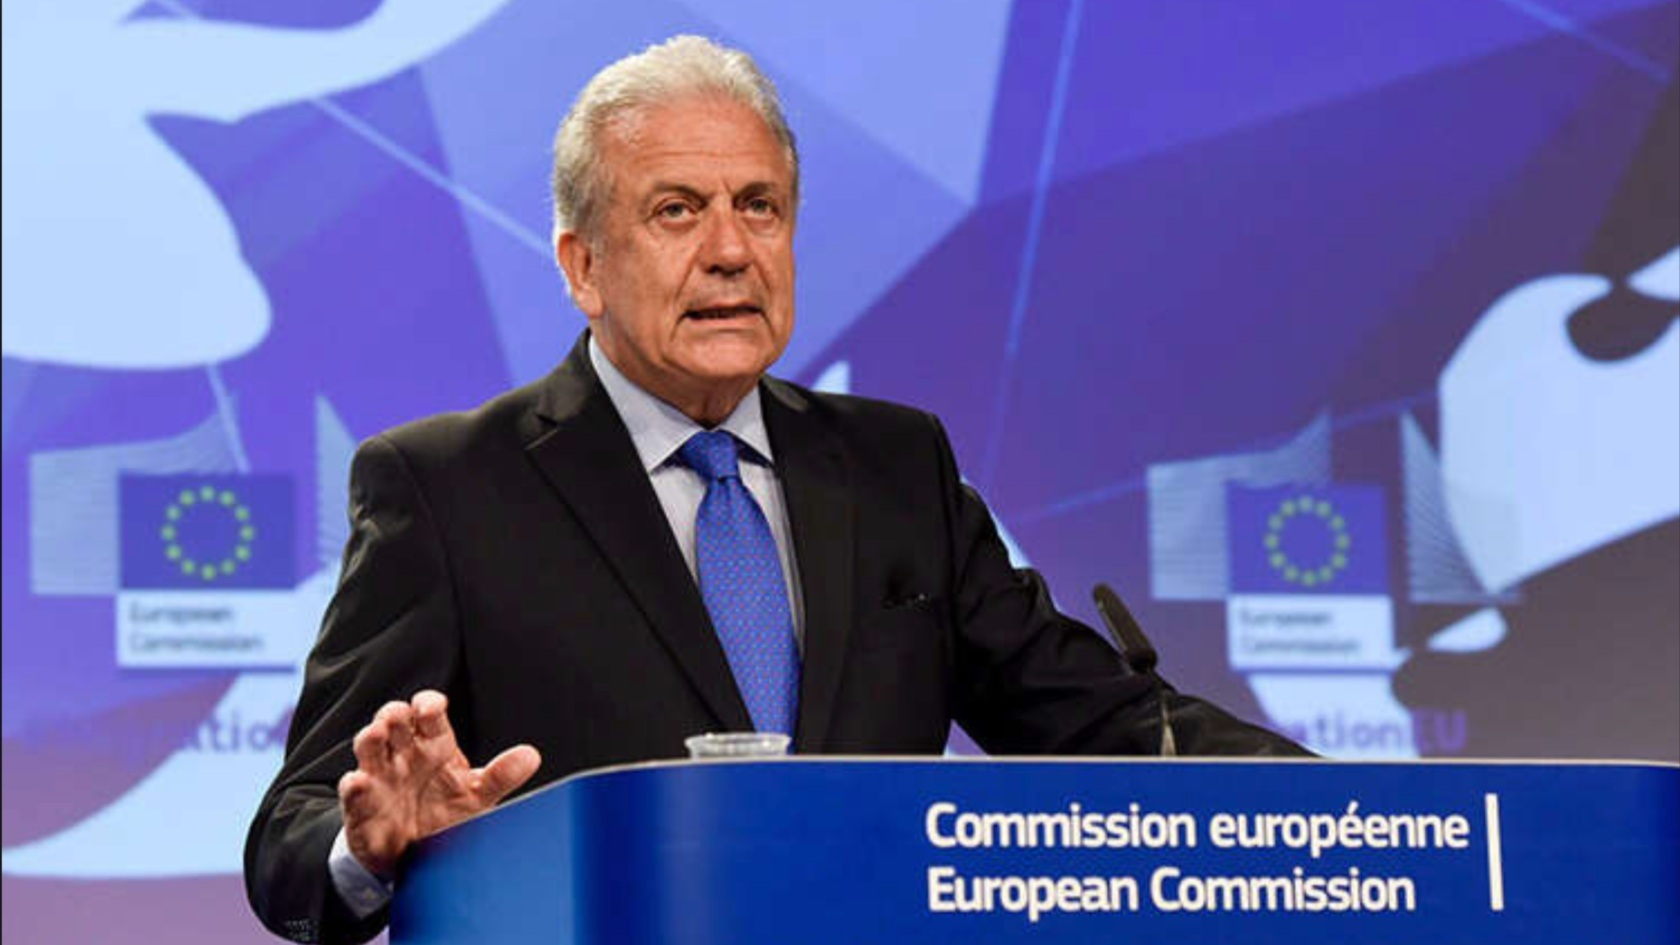 """""""Mr. Dimadis has been distinguished as the youngest correspondent who covered the Eurozone crisis with a strong track record of exclusive interviews. I assert for his professionalism and ethical integrity"""". - Dimitris Avramopoulos, European Commissioner on Migration, Citizenship and Home Affairs"""